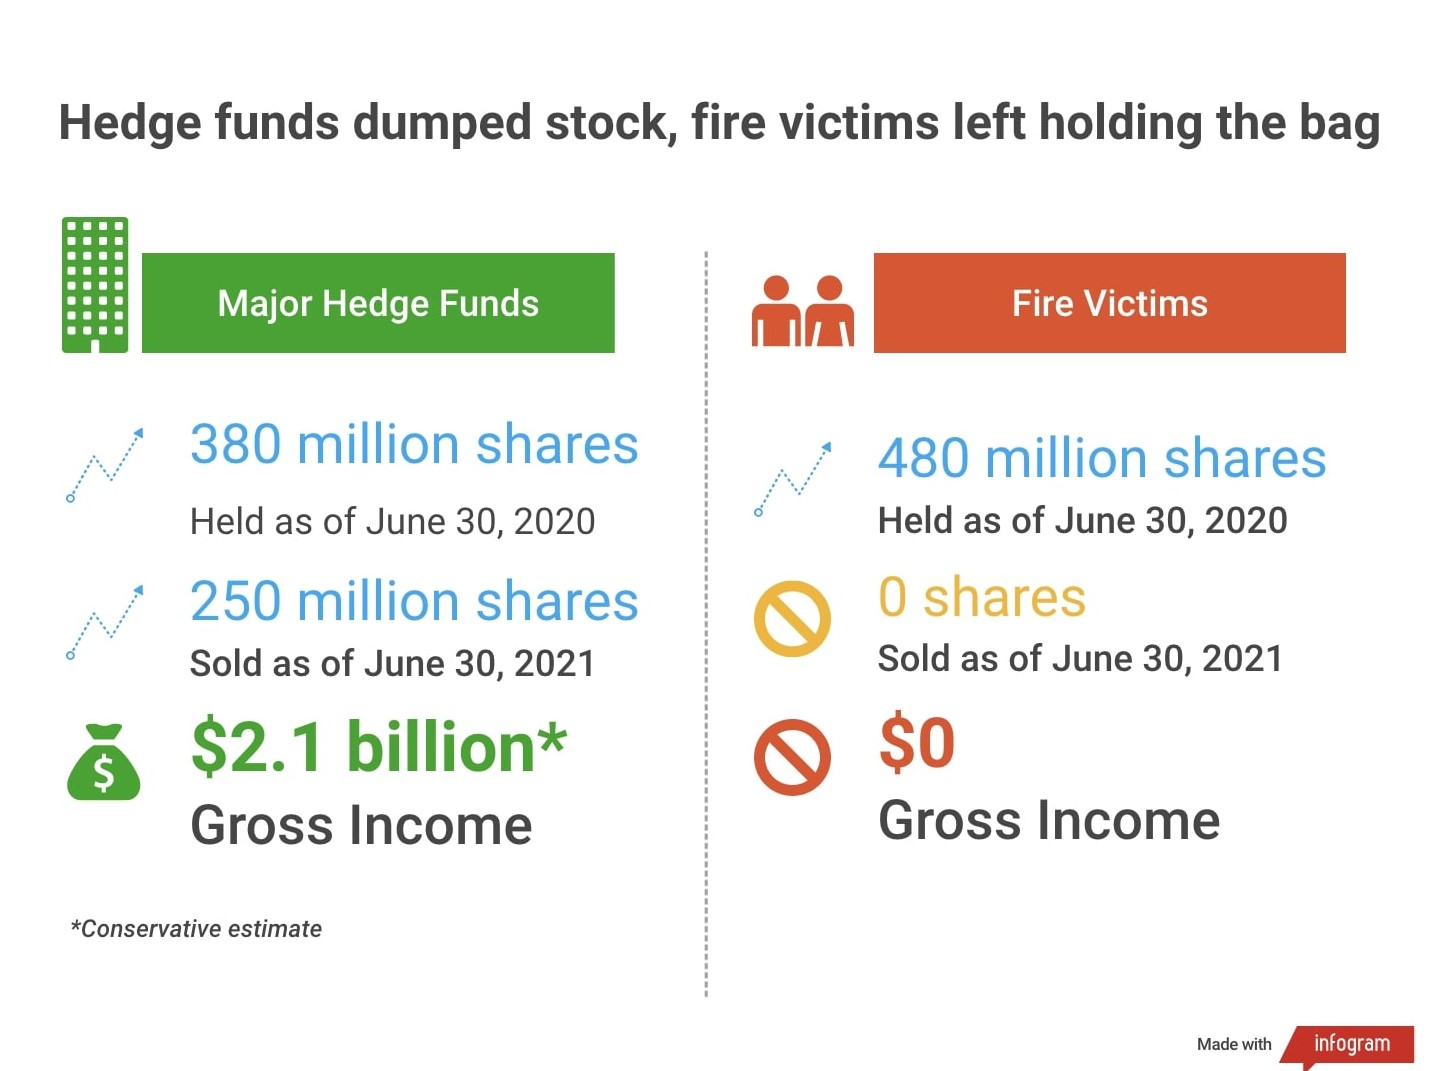 A graphic describes statistics for hedge funds that profited $2.1 billion in gross income while fire victims had $0 in gross income. Hedge funds sold 250 million shares of PG&E whereas fire victims kept 480 million shares.